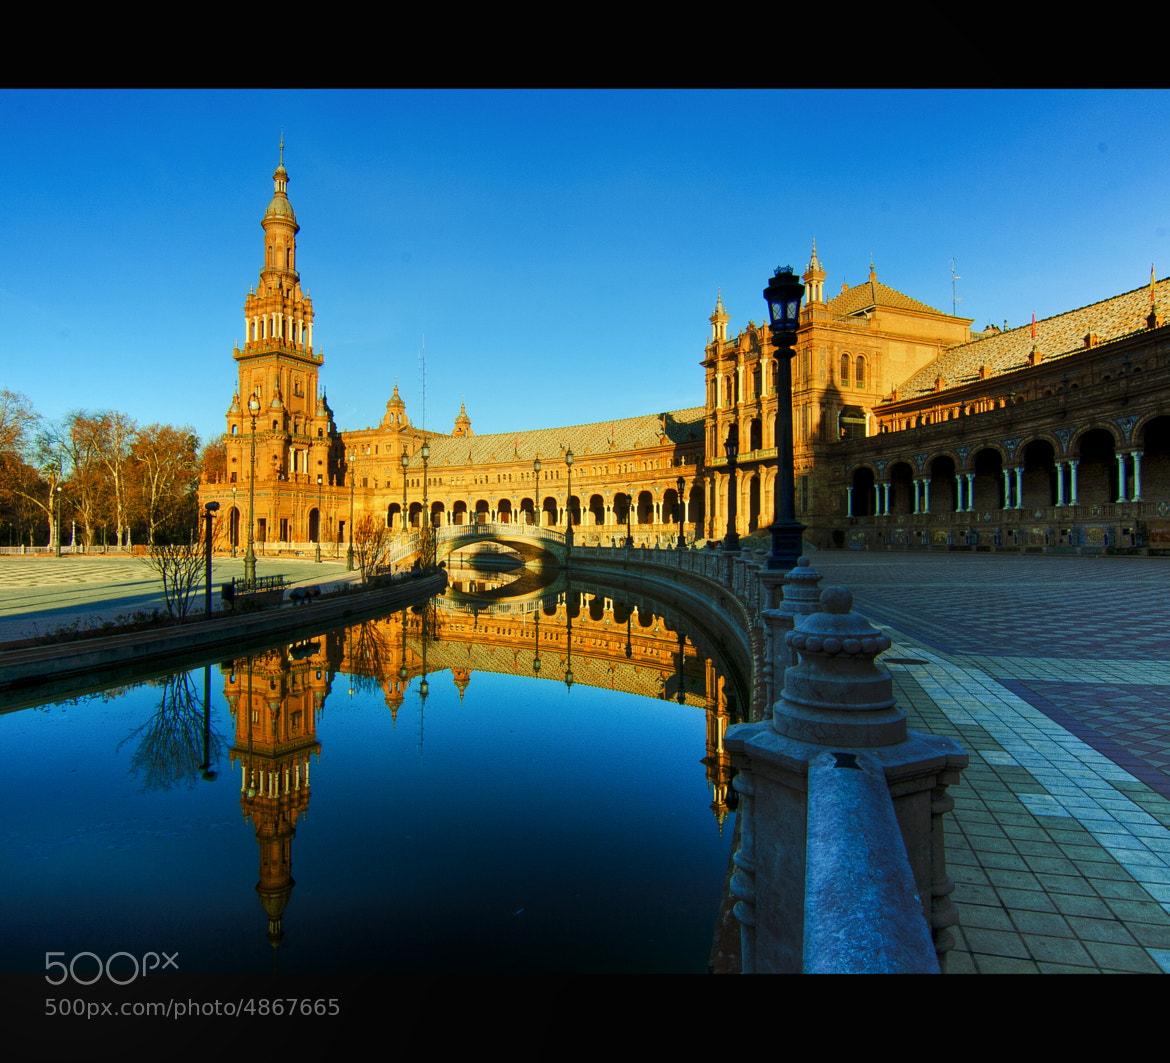 Photograph Plaza Espana by Mehdi Sersab on 500px